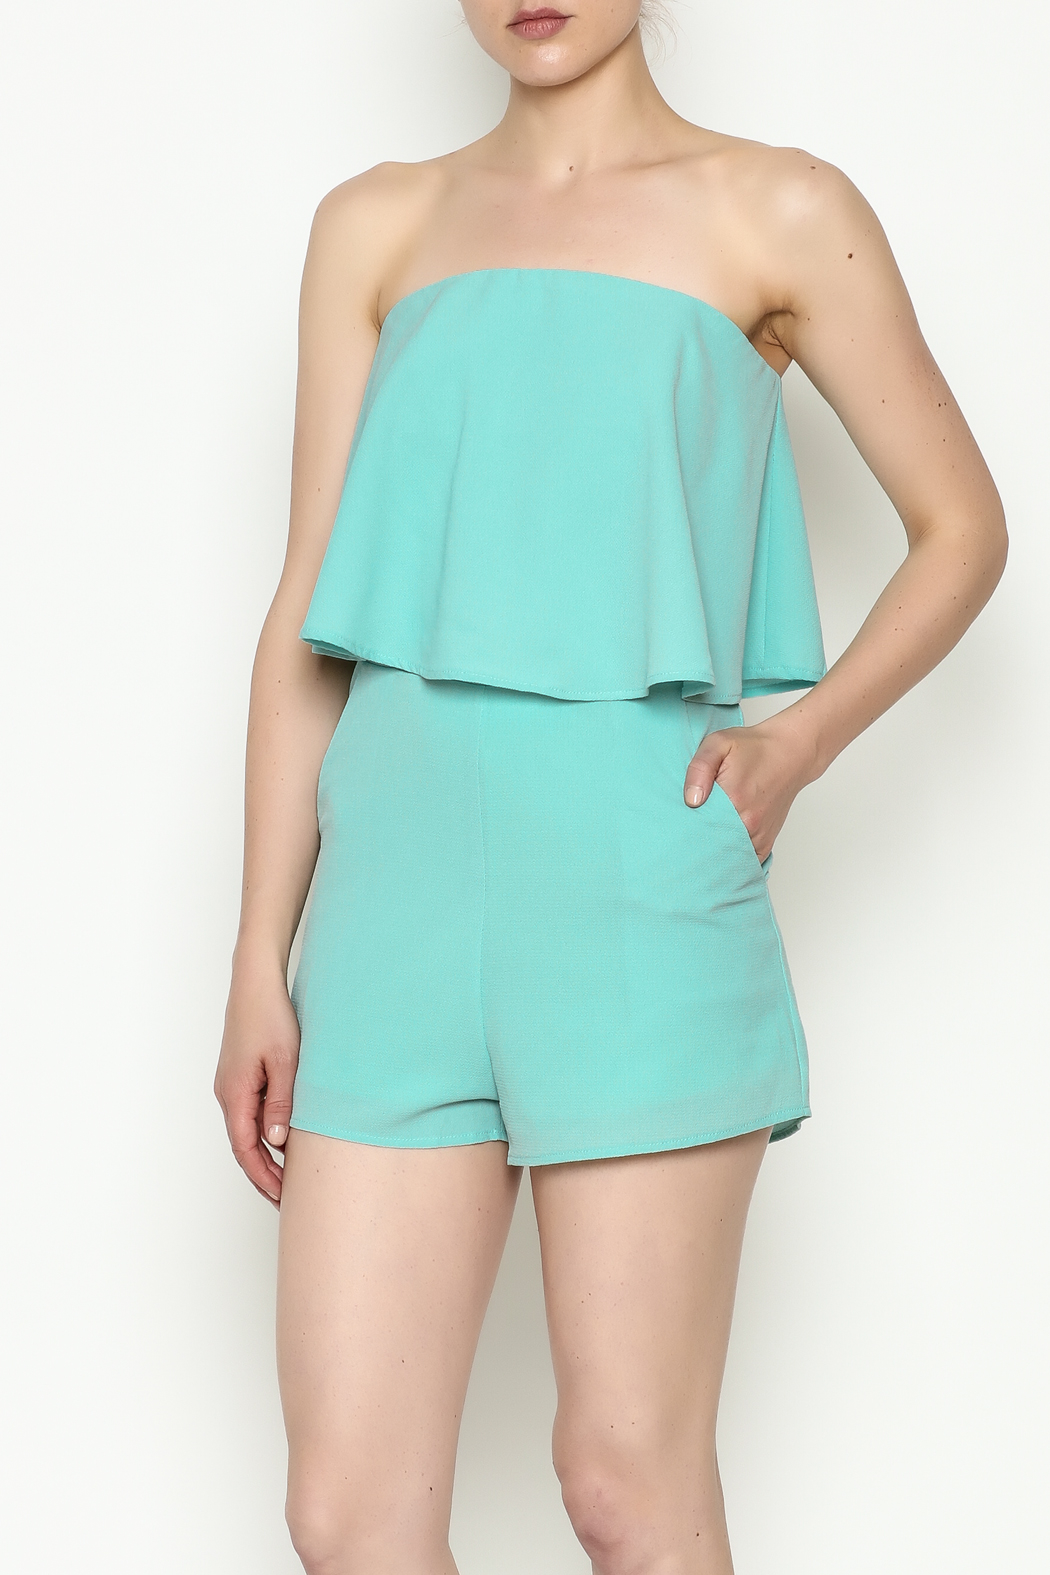 She + Sky Mint Strapless Romper - Front Cropped Image